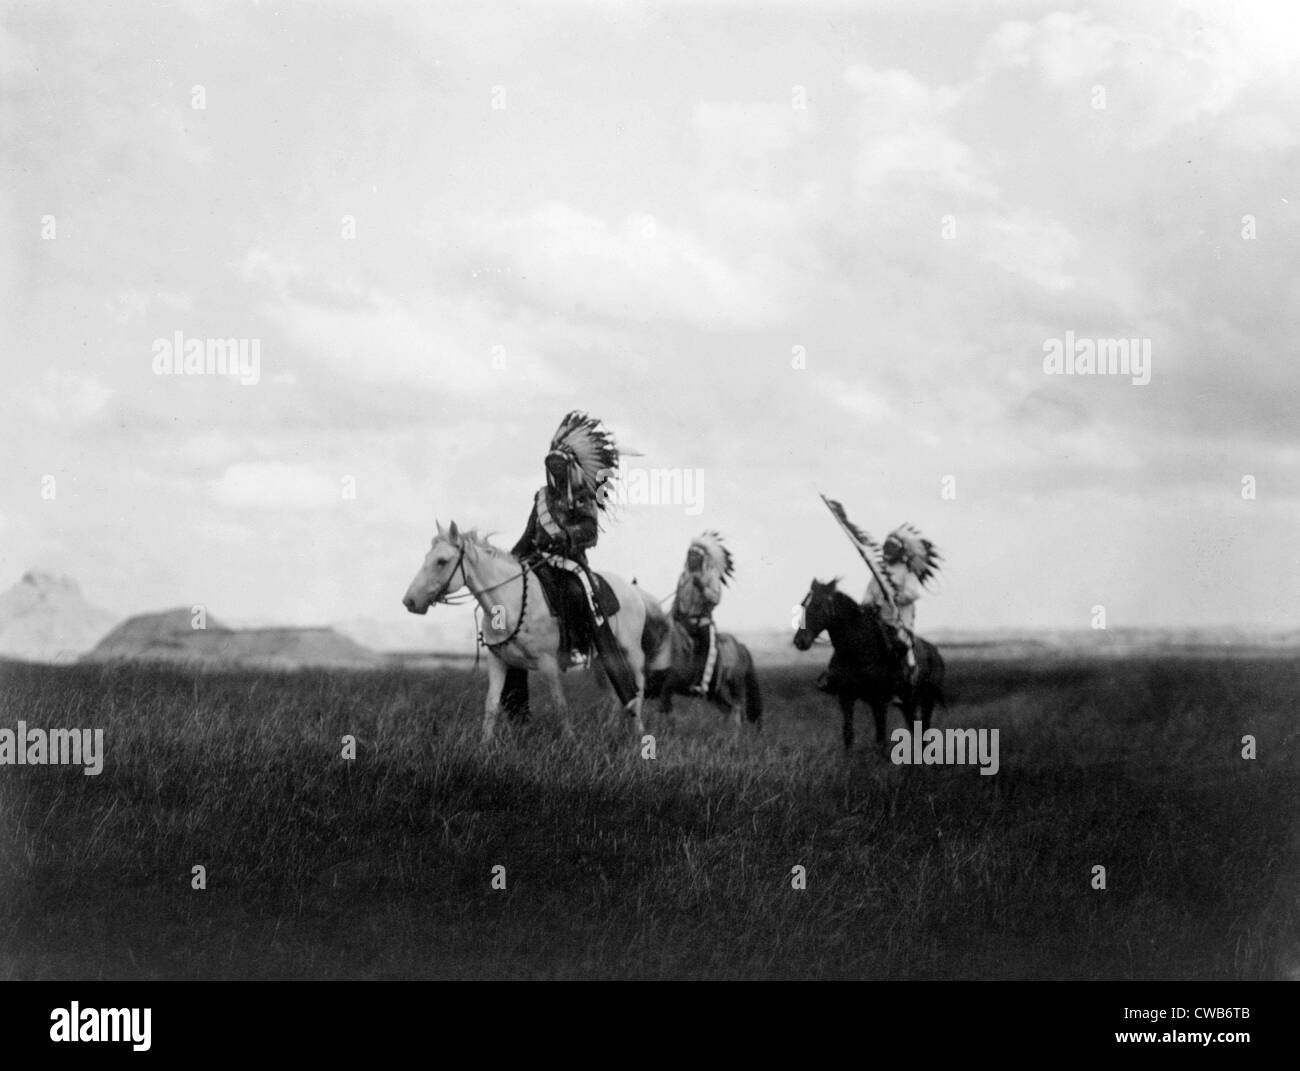 The March of the Sioux, three Sioux Indians on horseback on plains with rock formations in background, photograph - Stock Image